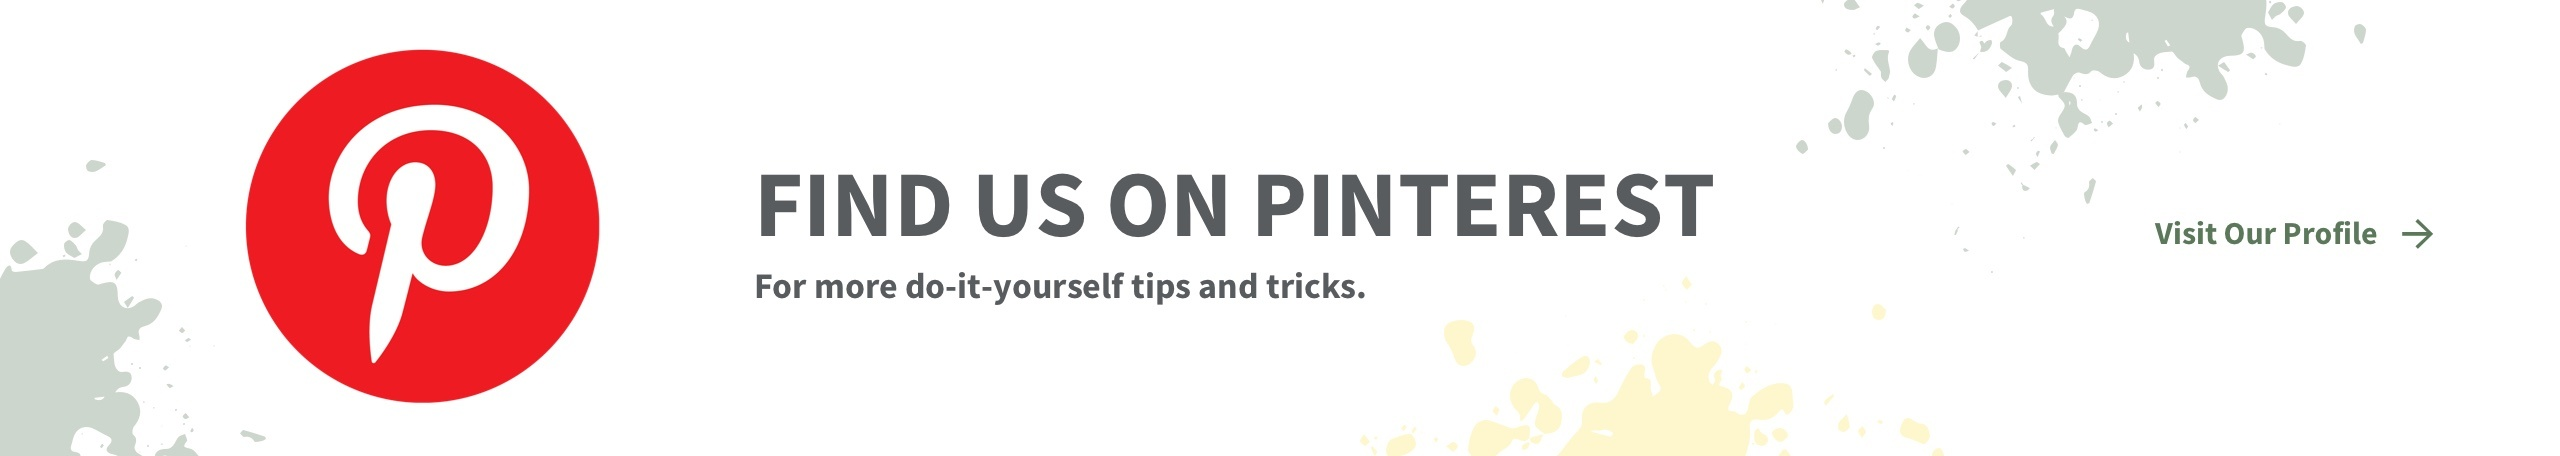 Pinterest - Find Us on Pinterest for More Do-it-Yourself Tips & Tricks